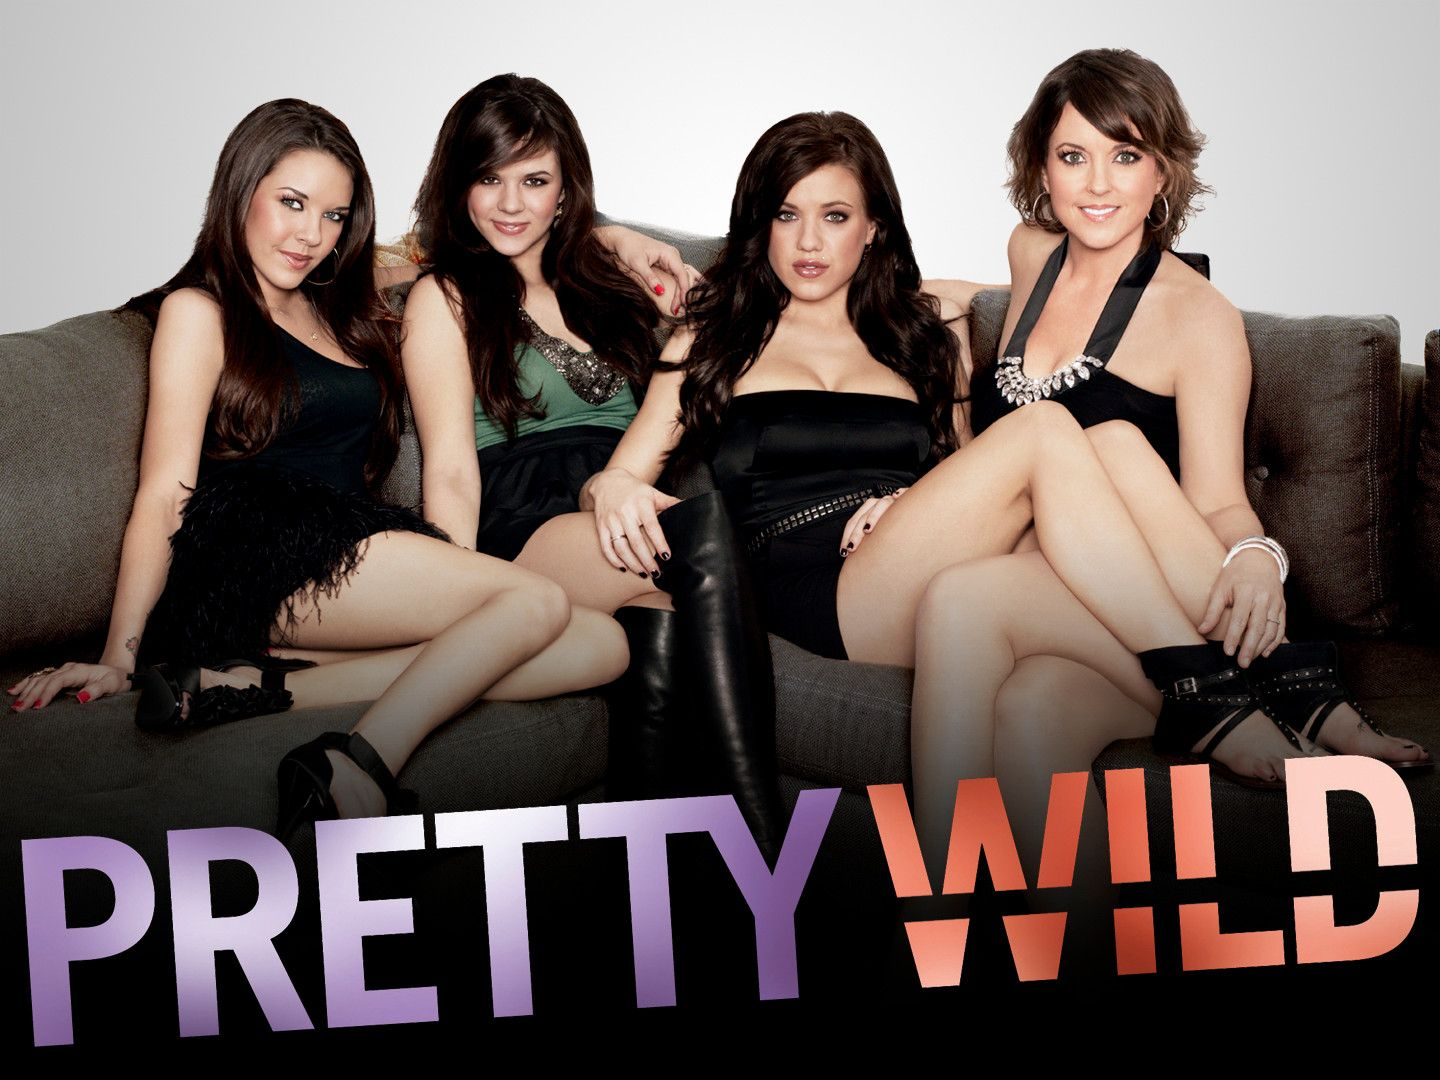 9. Pretty Wild – Drug Addiction